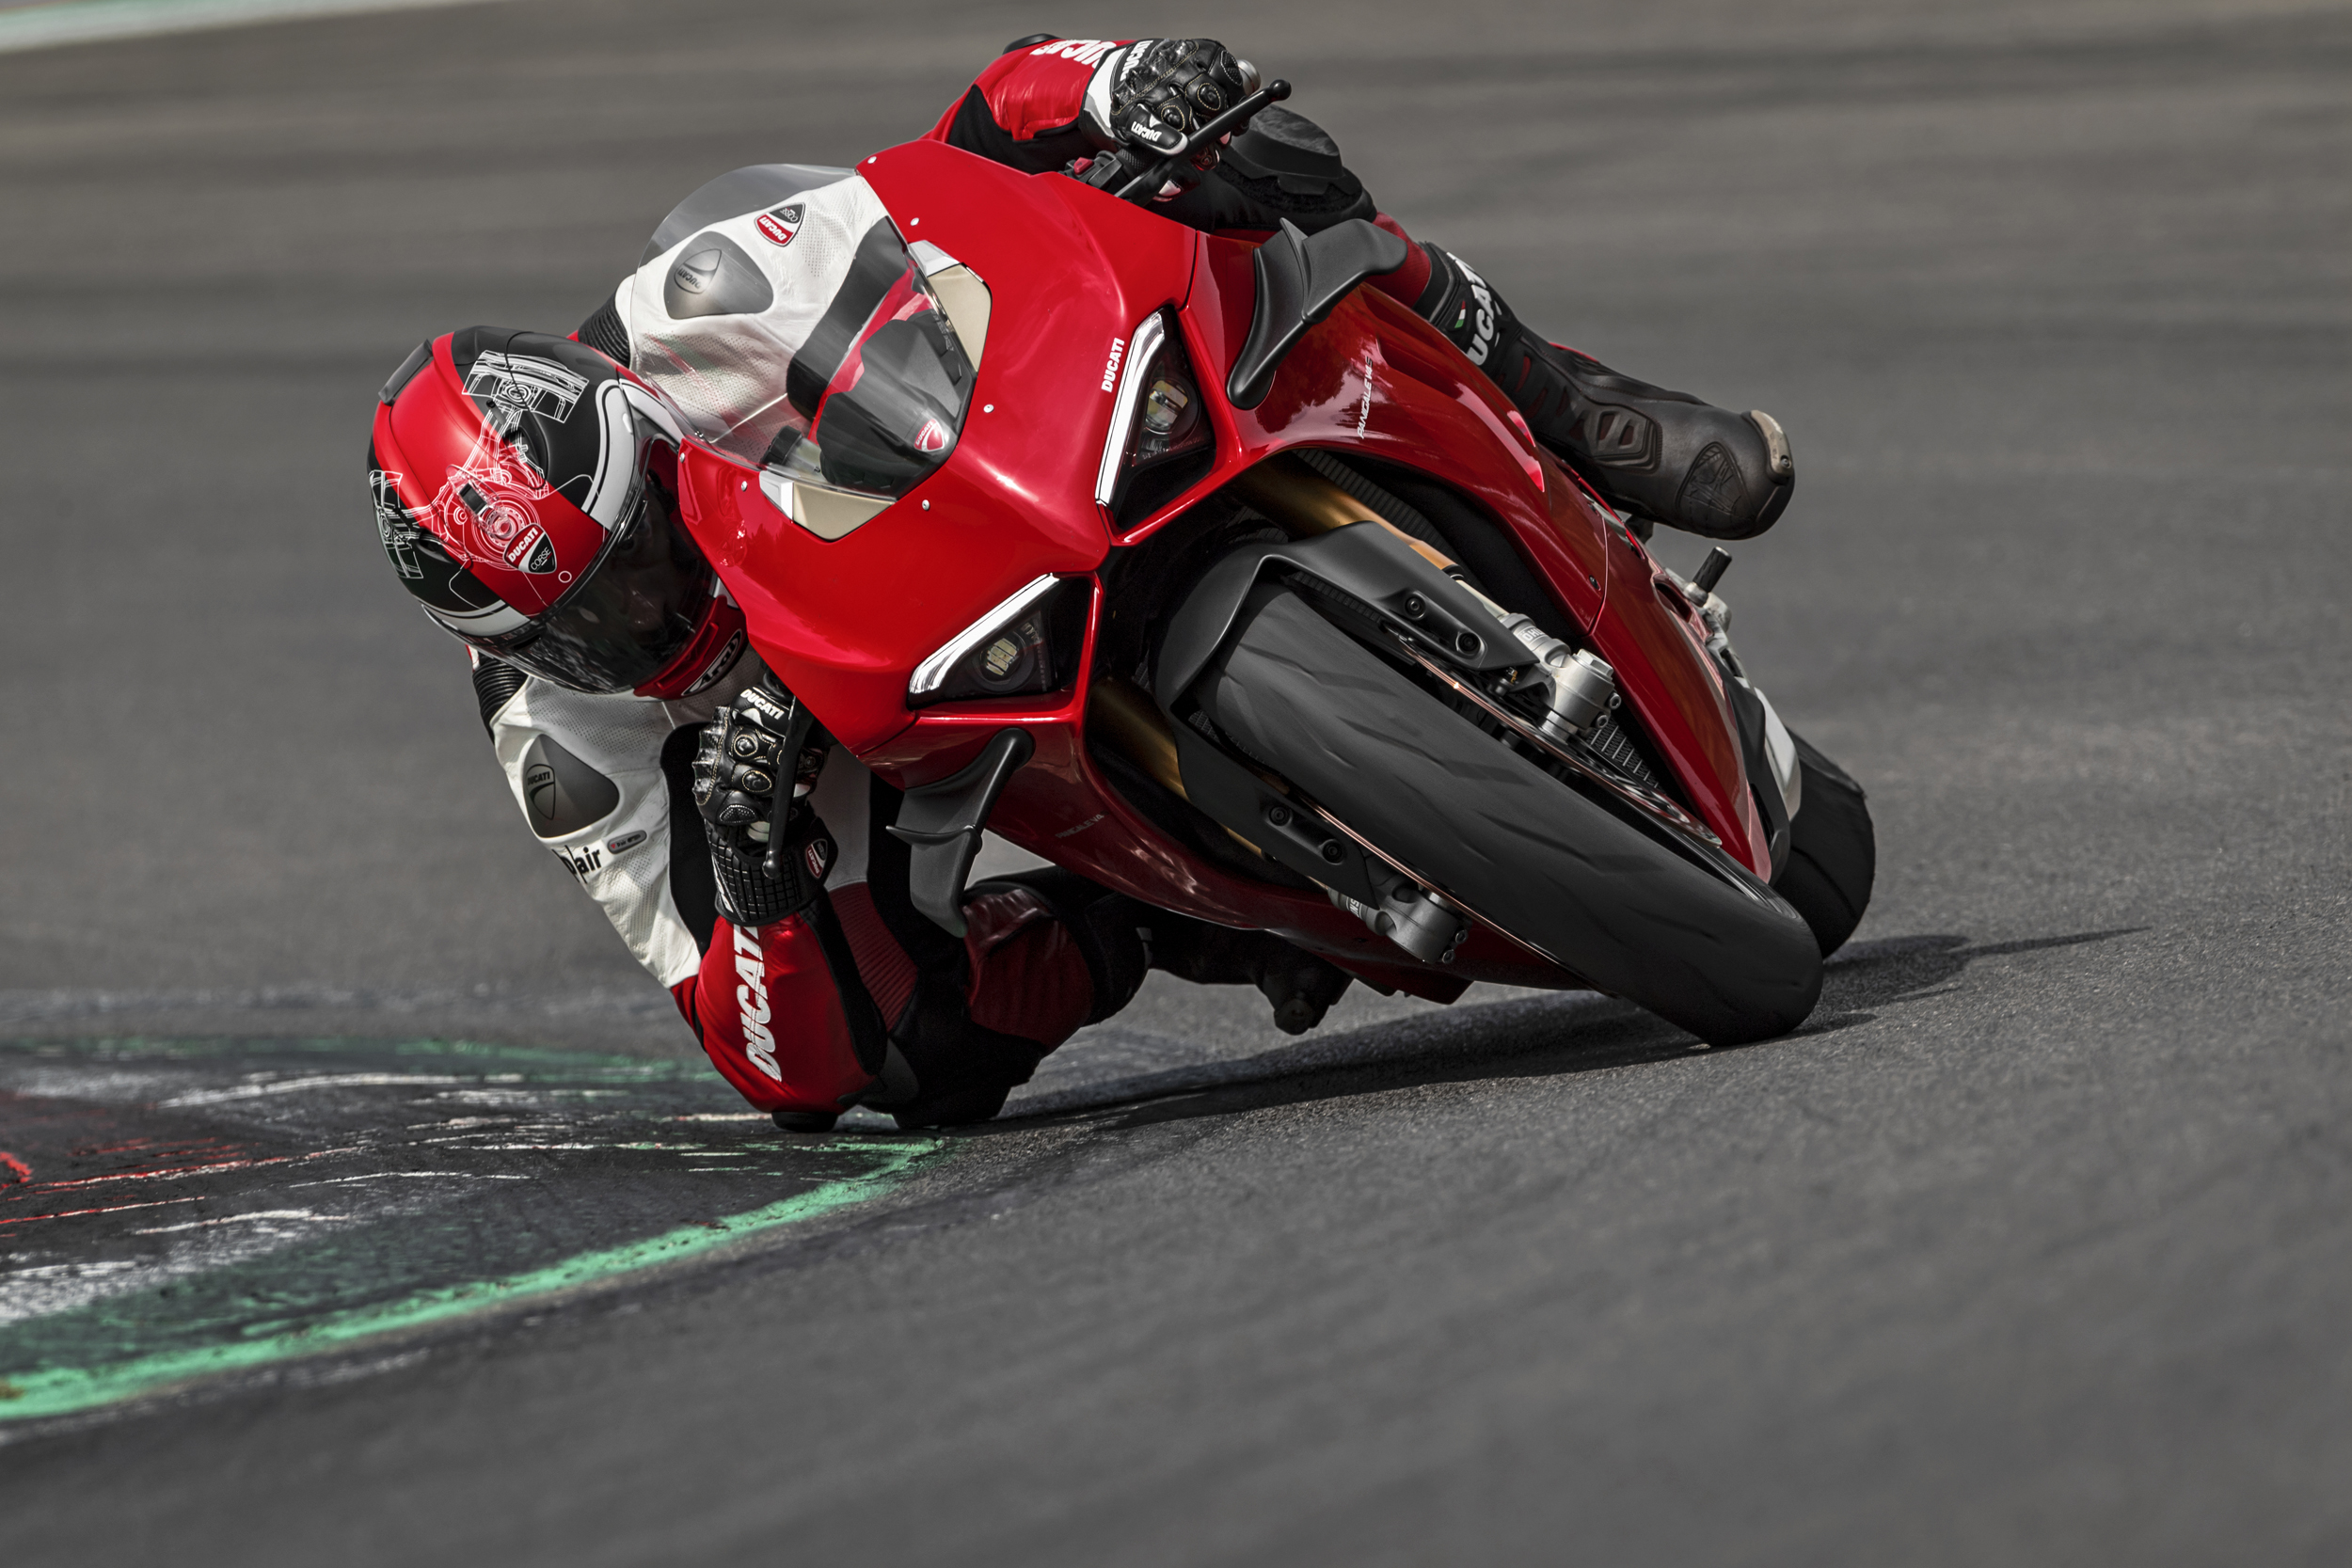 Ducati Panigale V4 S - Ready 4 Red